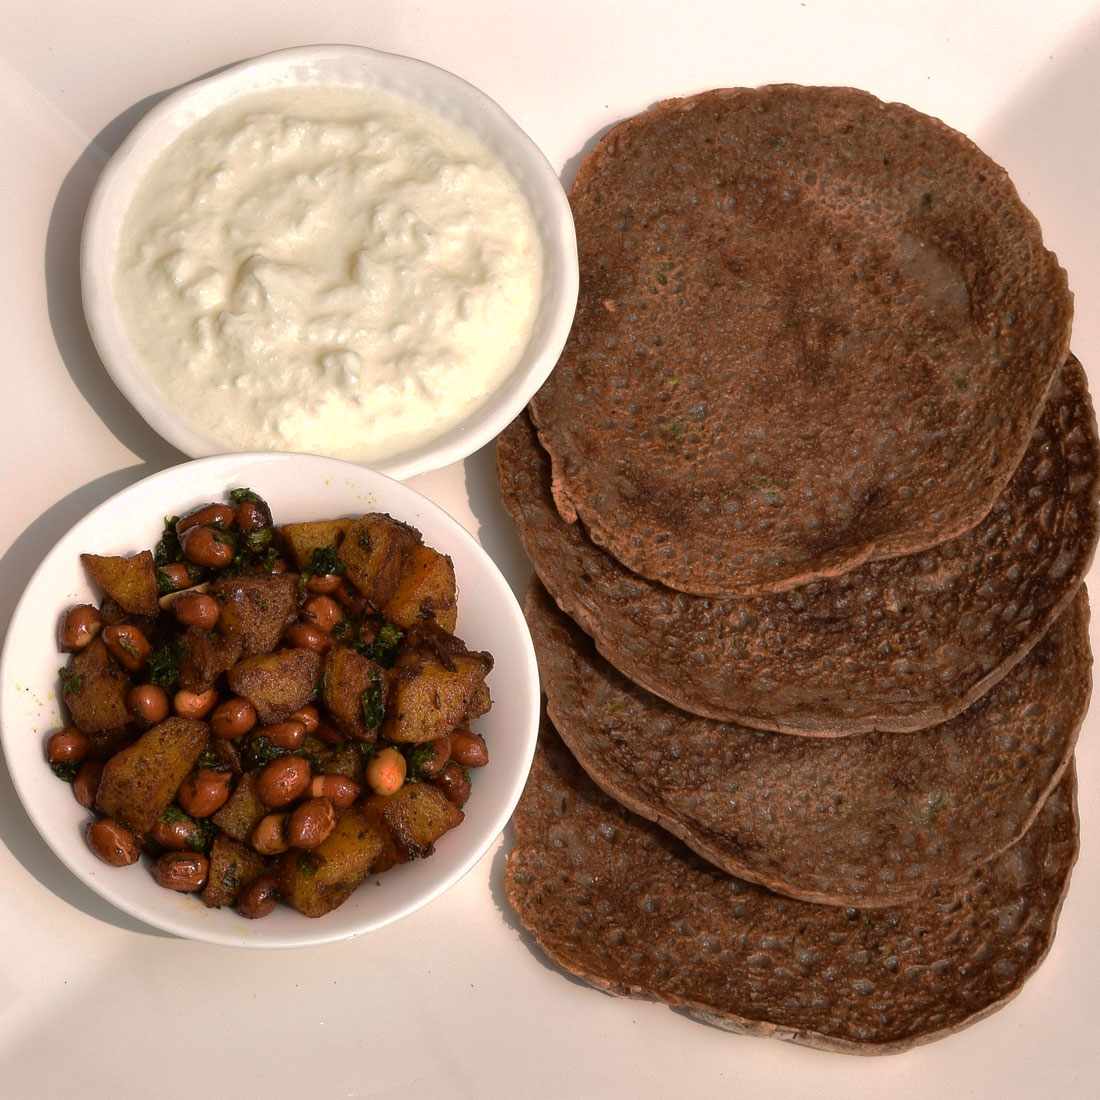 Singhare ka atta chilla with potatoes and peanuts